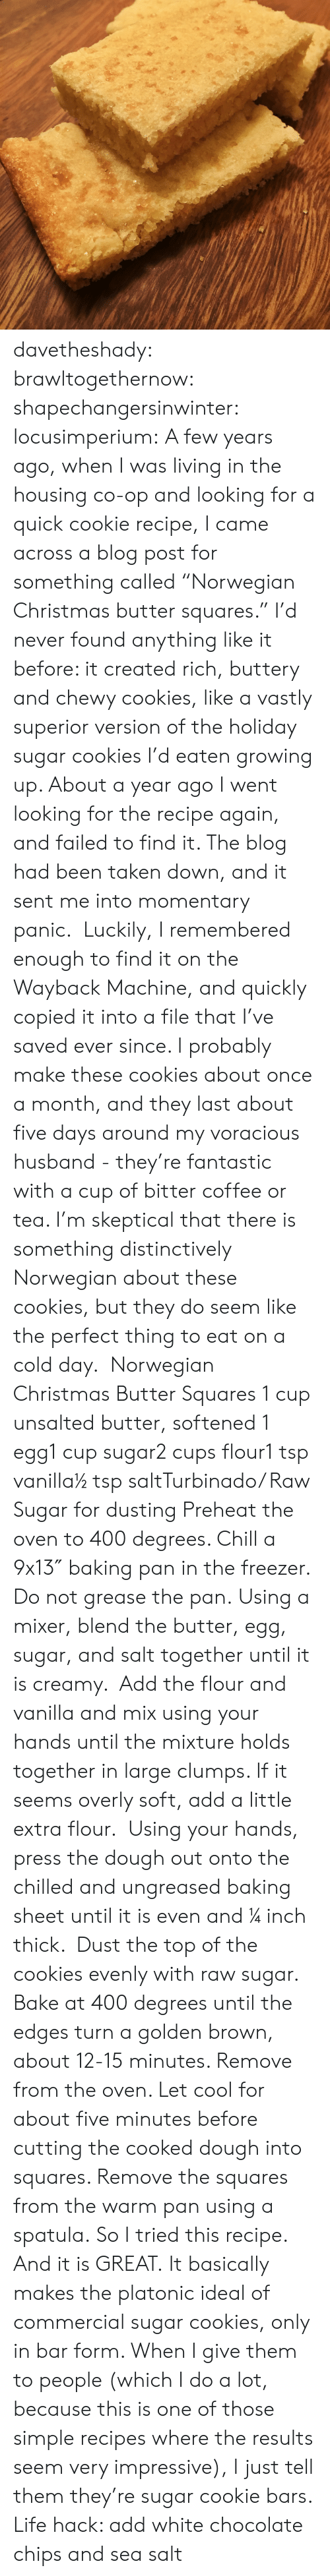 """chilled: davetheshady:  brawltogethernow:  shapechangersinwinter:  locusimperium:  A few years ago, when I was living in the housing co-op and looking for a quick cookie recipe, I came across a blog post for something called""""Norwegian Christmas butter squares."""" I'd never found anything like it before: it created rich, buttery and chewy cookies, like a vastly superior version of the holiday sugar cookies I'd eaten growing up. About a year ago I went looking for the recipe again, and failed to find it. The blog had been taken down, and it sent me into momentary panic. Luckily, I remembered enough to find it on the Wayback Machine, and quickly copied it into a file that I've saved ever since. I probably make these cookies about once a month, and they last about five days around my voracious husband - they're fantastic with a cup of bitter coffee or tea. I'm skeptical that there is something distinctively Norwegian about these cookies, but they do seem like the perfect thing to eat on a cold day.  Norwegian Christmas Butter Squares 1 cup unsalted butter, softened 1 egg1 cup sugar2 cups flour1 tsp vanilla½ tsp saltTurbinado/ Raw Sugar for dusting Preheat the oven to 400 degrees. Chill a 9x13″ baking pan in the freezer. Do not grease the pan. Using a mixer, blend the butter, egg, sugar, and salt together until it is creamy. Add the flour and vanilla and mix using your hands until the mixture holds together in large clumps. If it seems overly soft, add a little extra flour. Using your hands, press the dough out onto the chilled and ungreased baking sheet until it is even and ¼ inch thick. Dust the top of the cookies evenly with raw sugar. Bake at 400 degrees until the edges turn a golden brown, about 12-15 minutes. Remove from the oven. Let cool for about five minutes before cutting the cooked dough into squares. Remove the squares from the warm pan using a spatula.    So I tried this recipe. And it is GREAT. It basically makes the platonic ideal of commercial sugar cookie"""